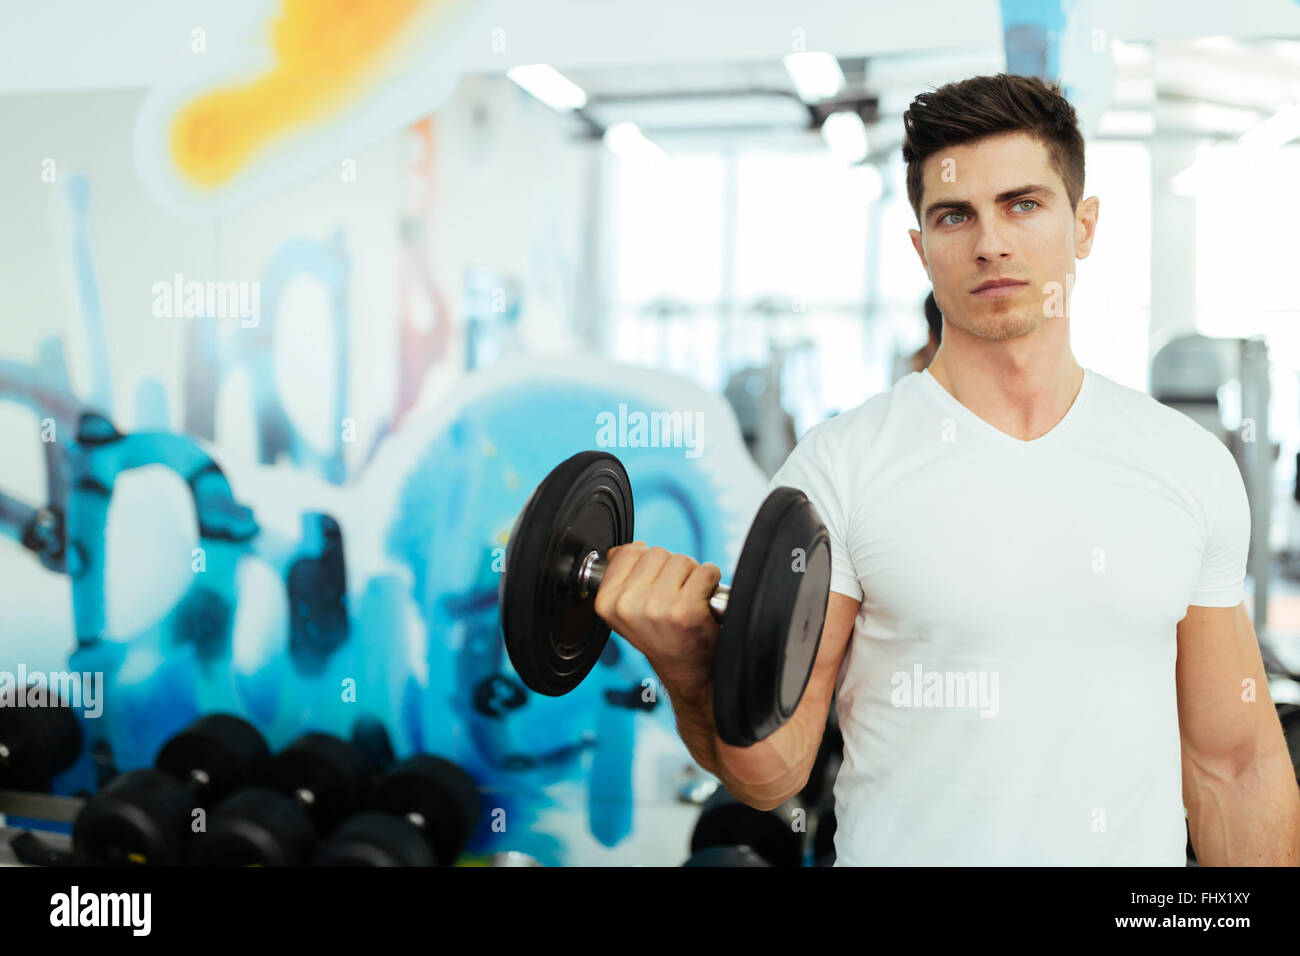 Handsome man lifting weights in gym and staying fit - Stock Image